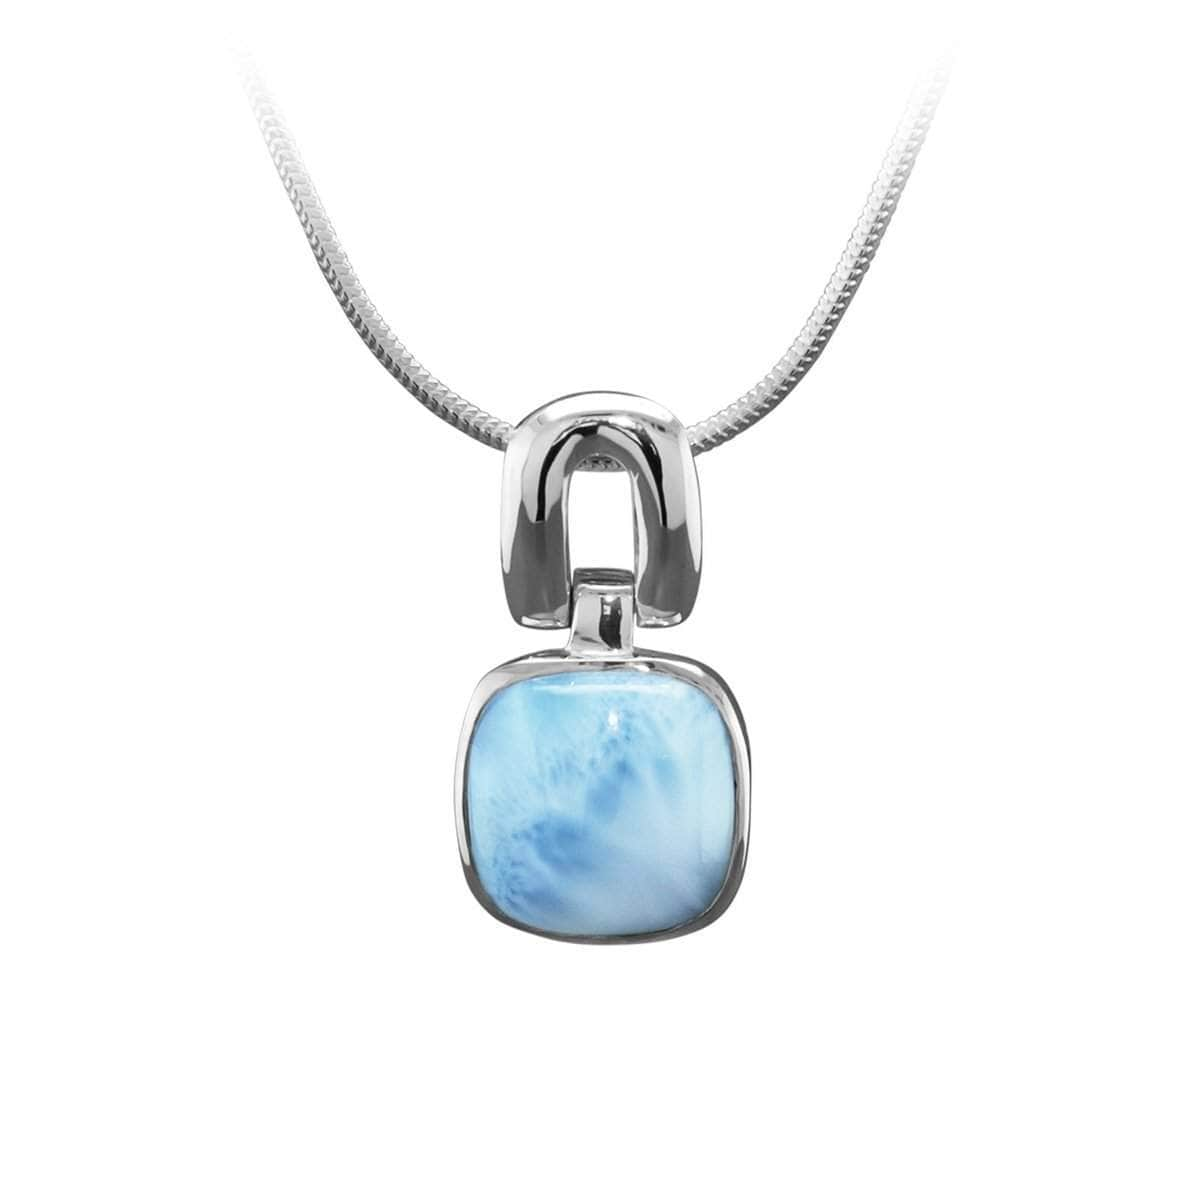 Del Mar Necklace - Ndelm00-00-Marahlago Larimar-Renee Taylor Gallery